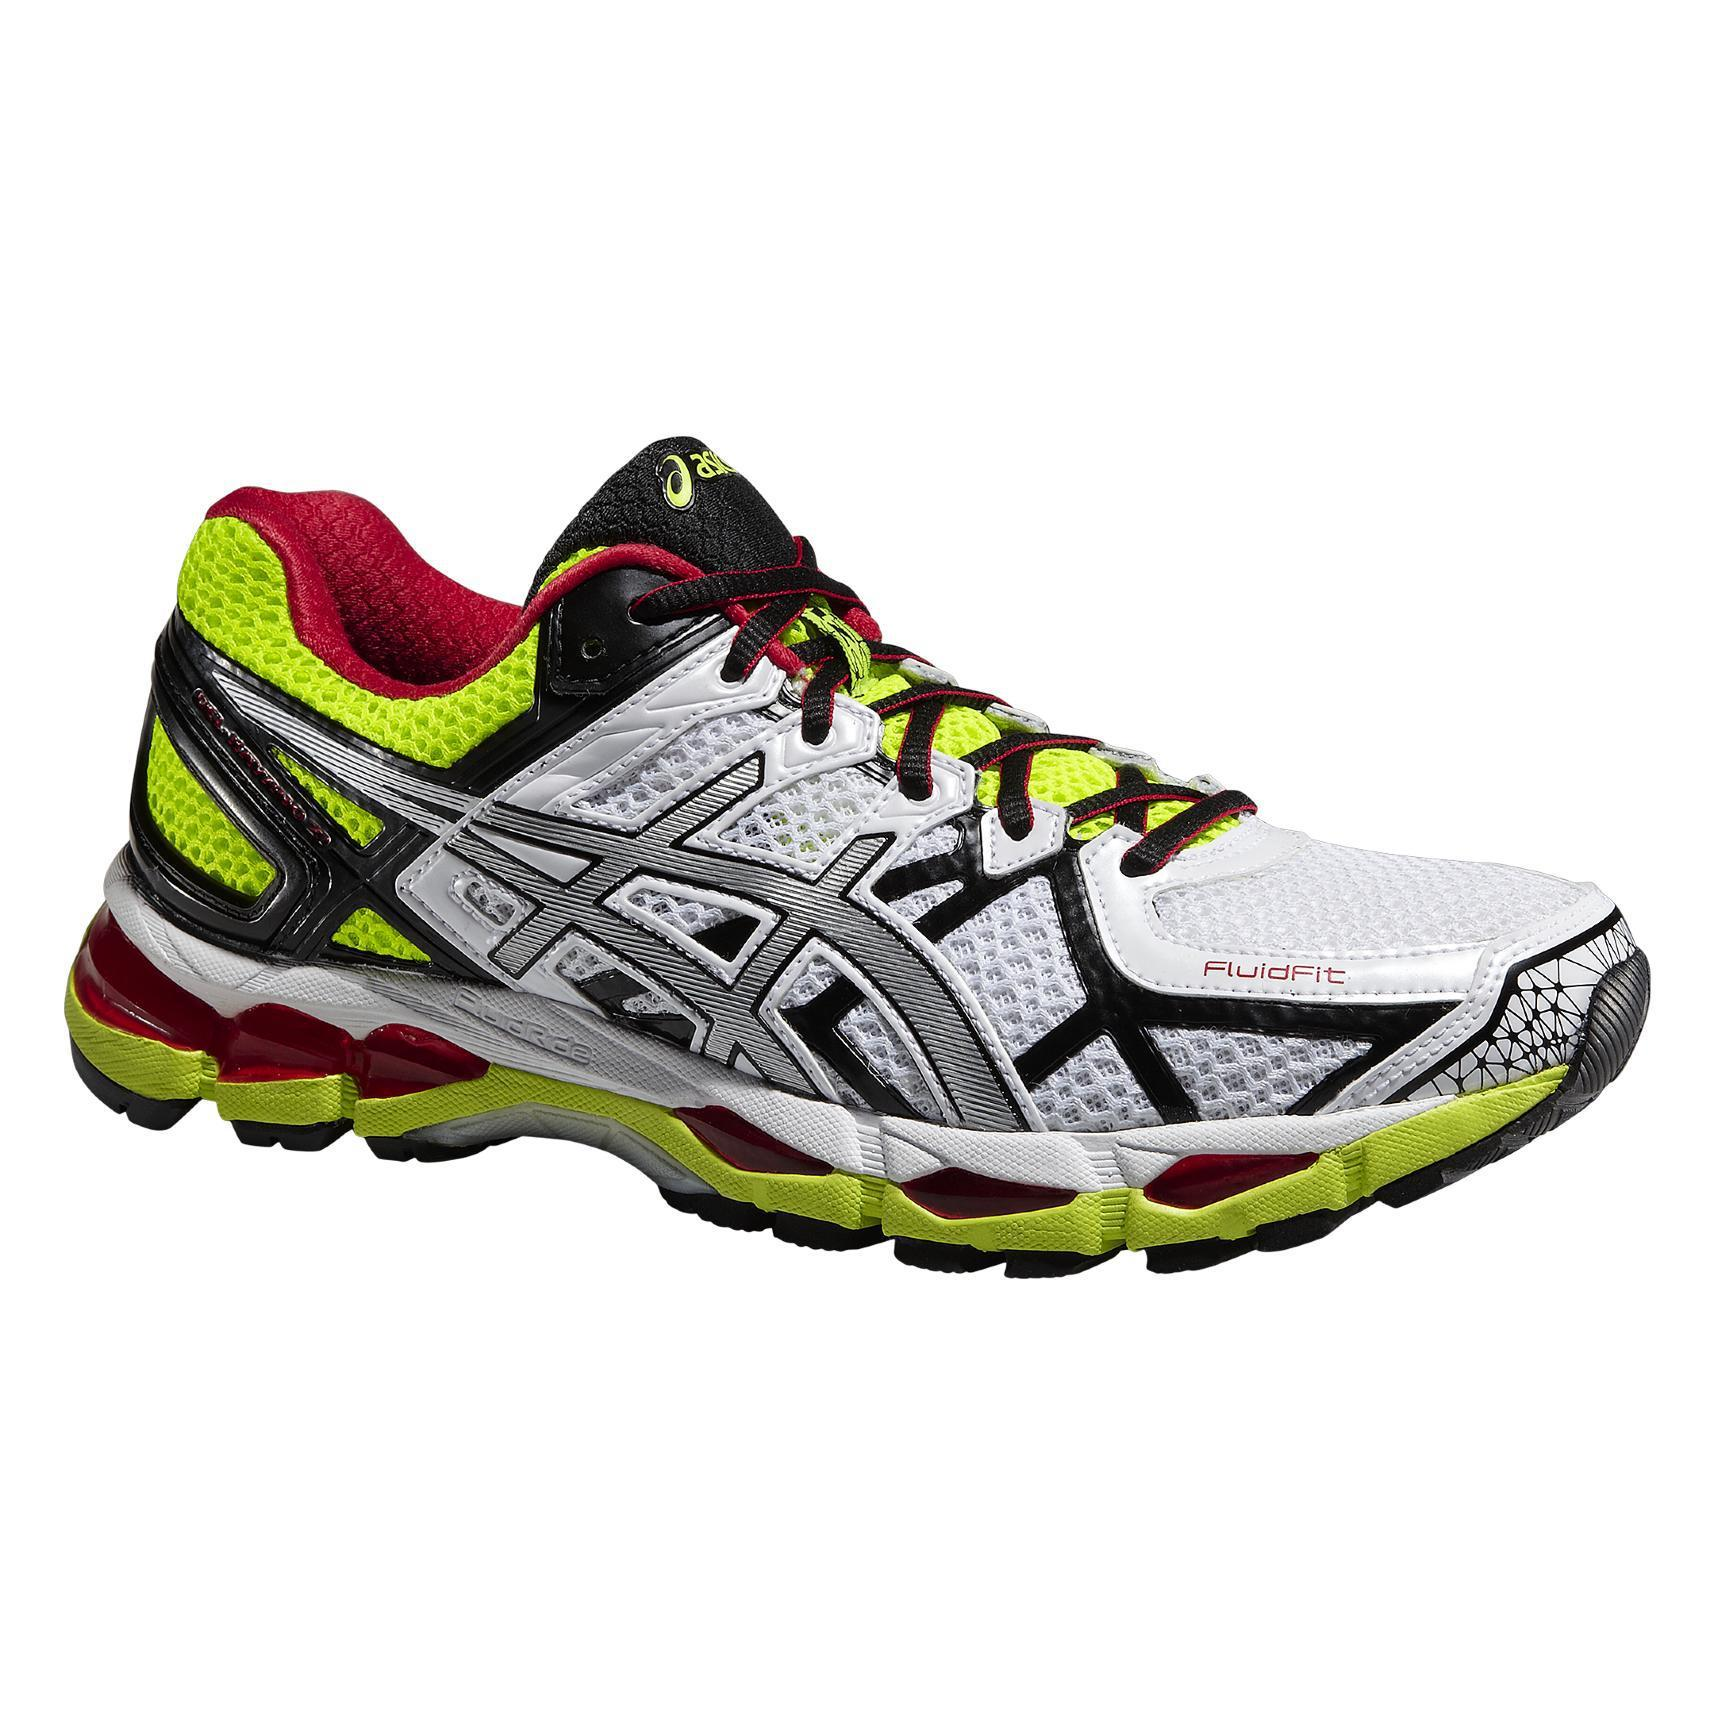 new style c6bb7 668bc Asics Mens GEL-Kayano 21 Running Shoes - White Yellow - Tennisnuts.com